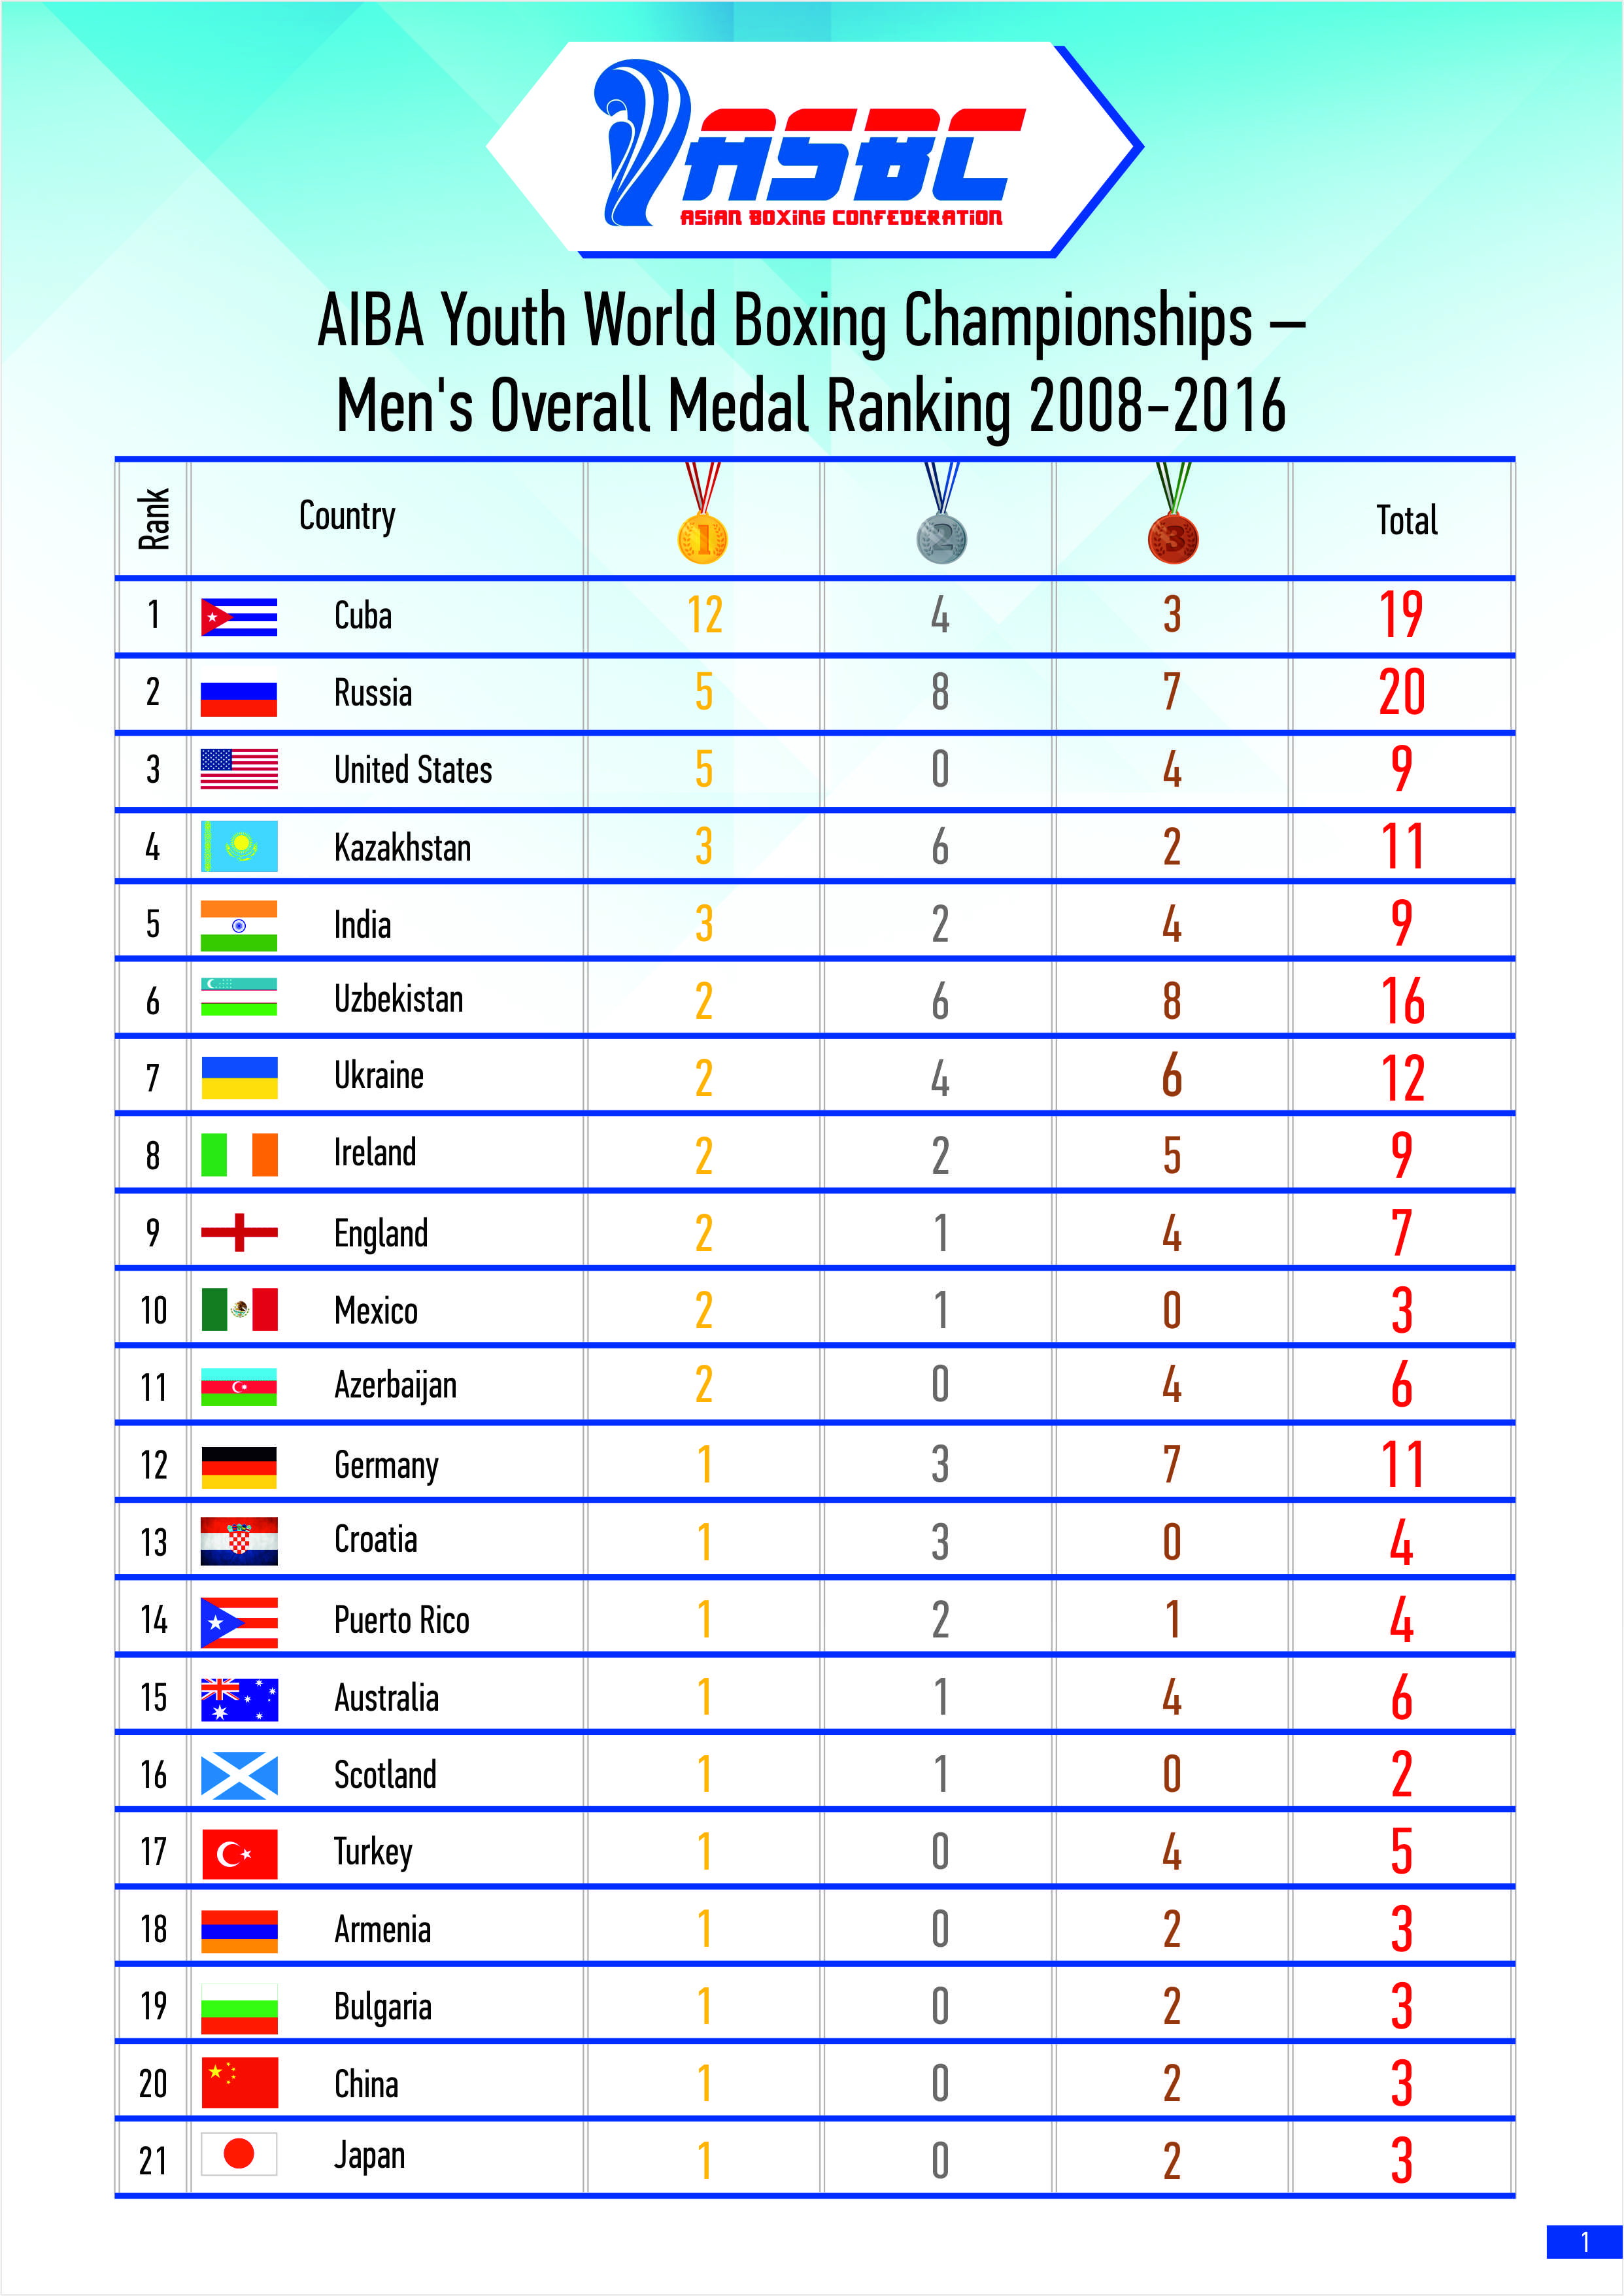 AIBA Youth World Boxing Championships – Men's Overall